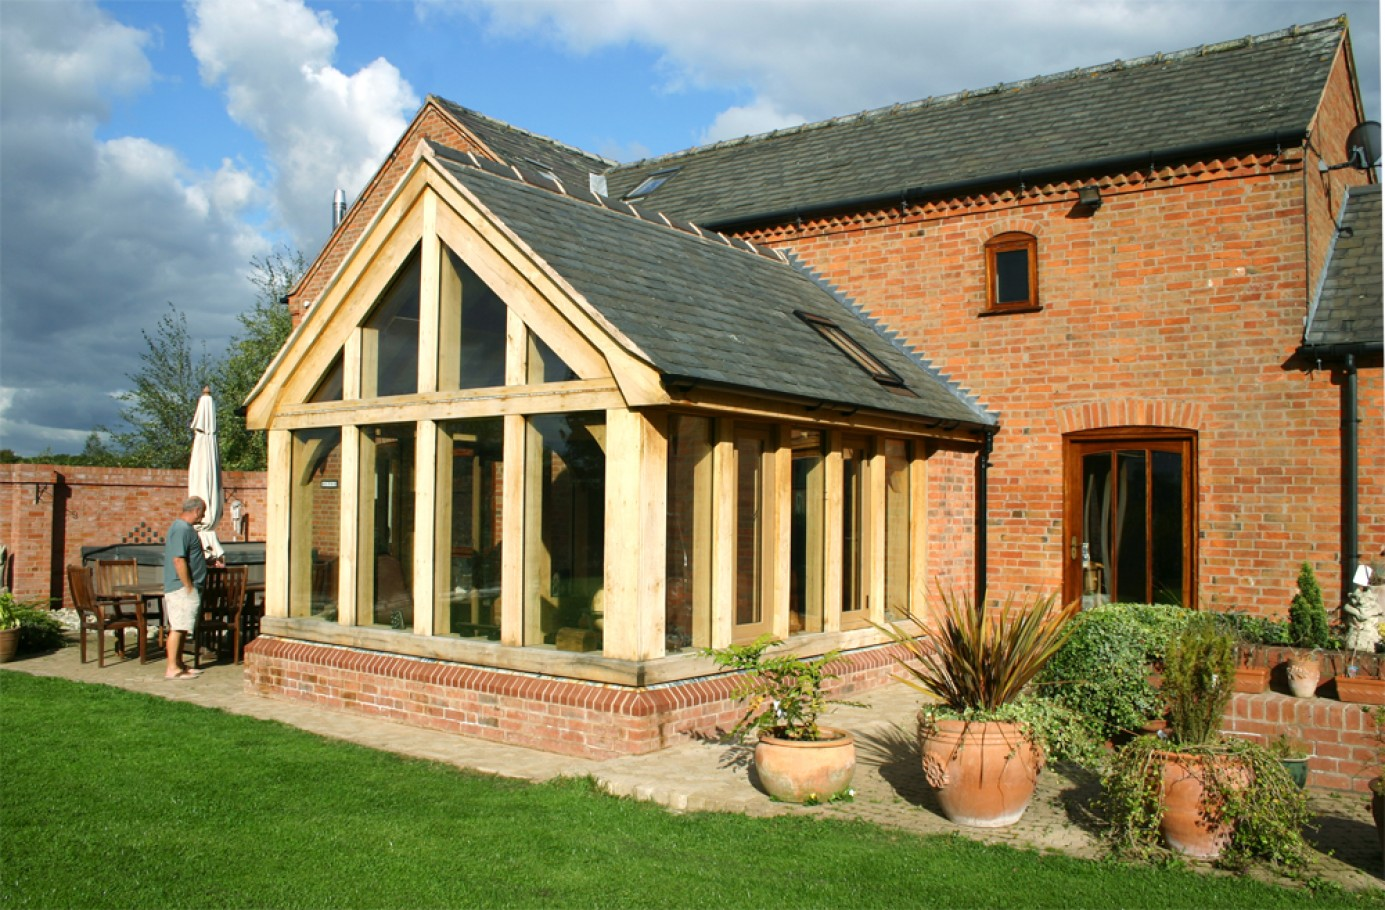 newburry oak garden room natural structures